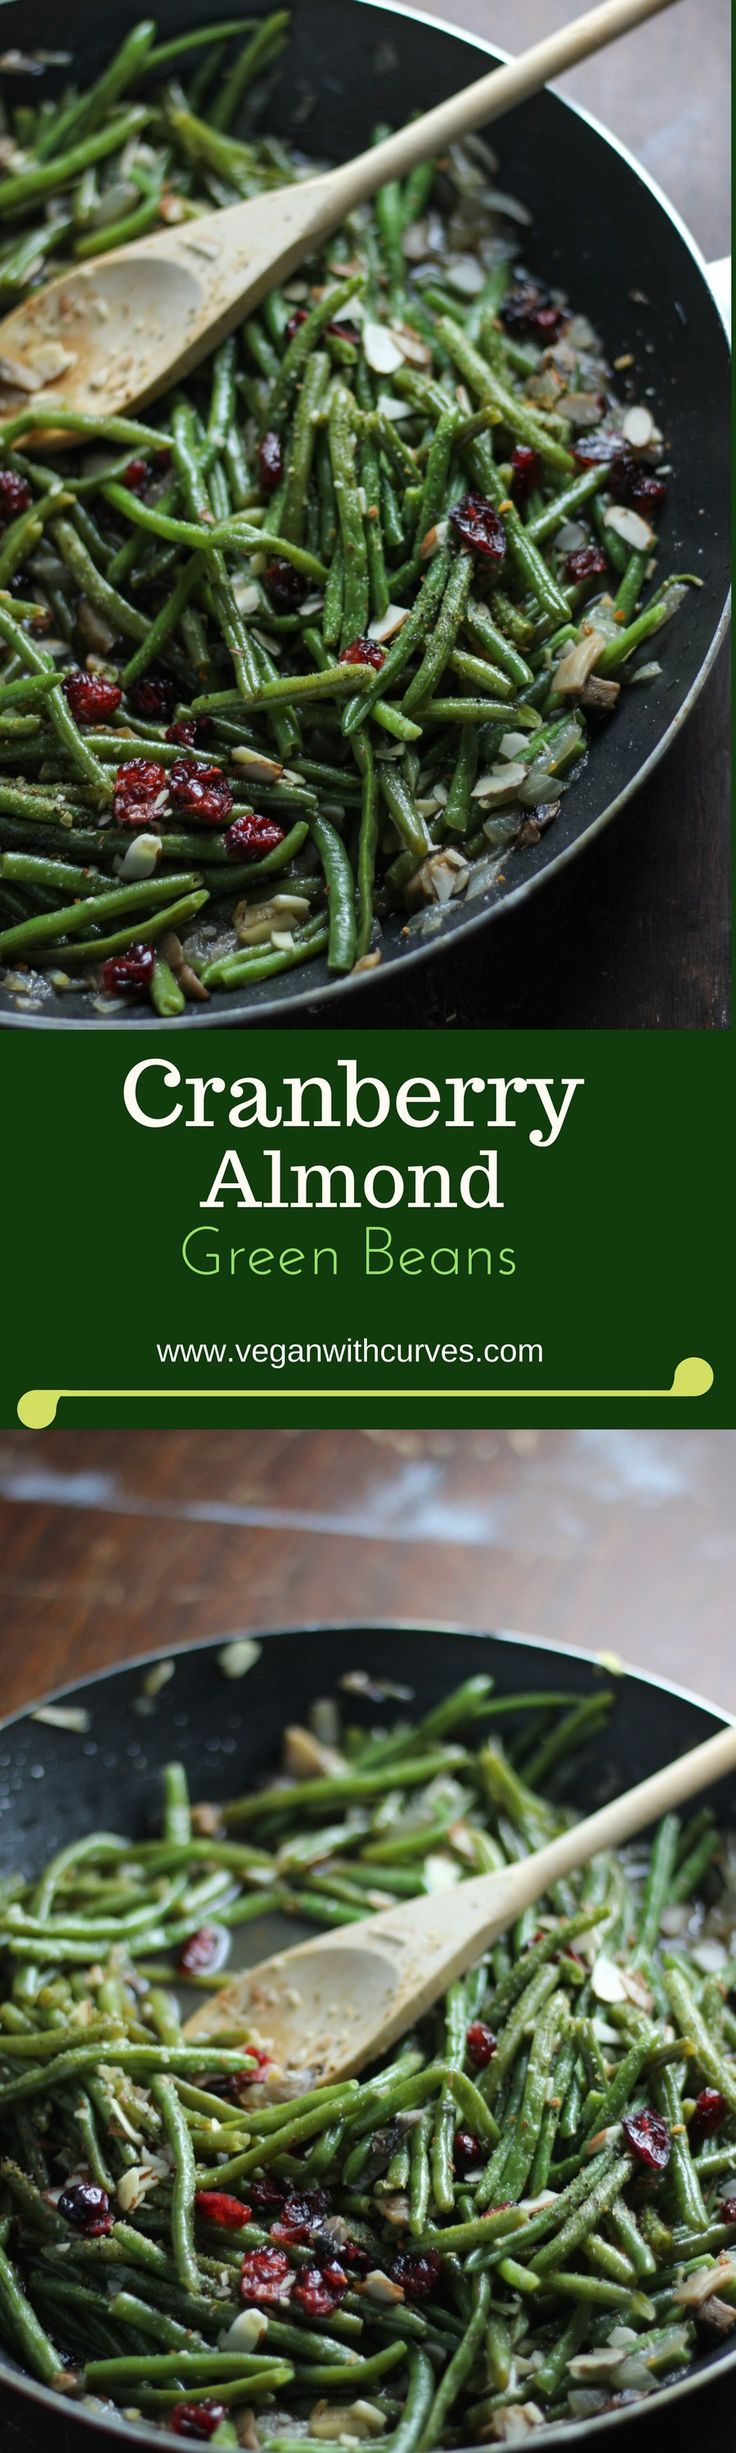 Cranberry Almond Green Beans. The dried cranberries  (dried fruit) gives this savory side dish a nice sweet balance.